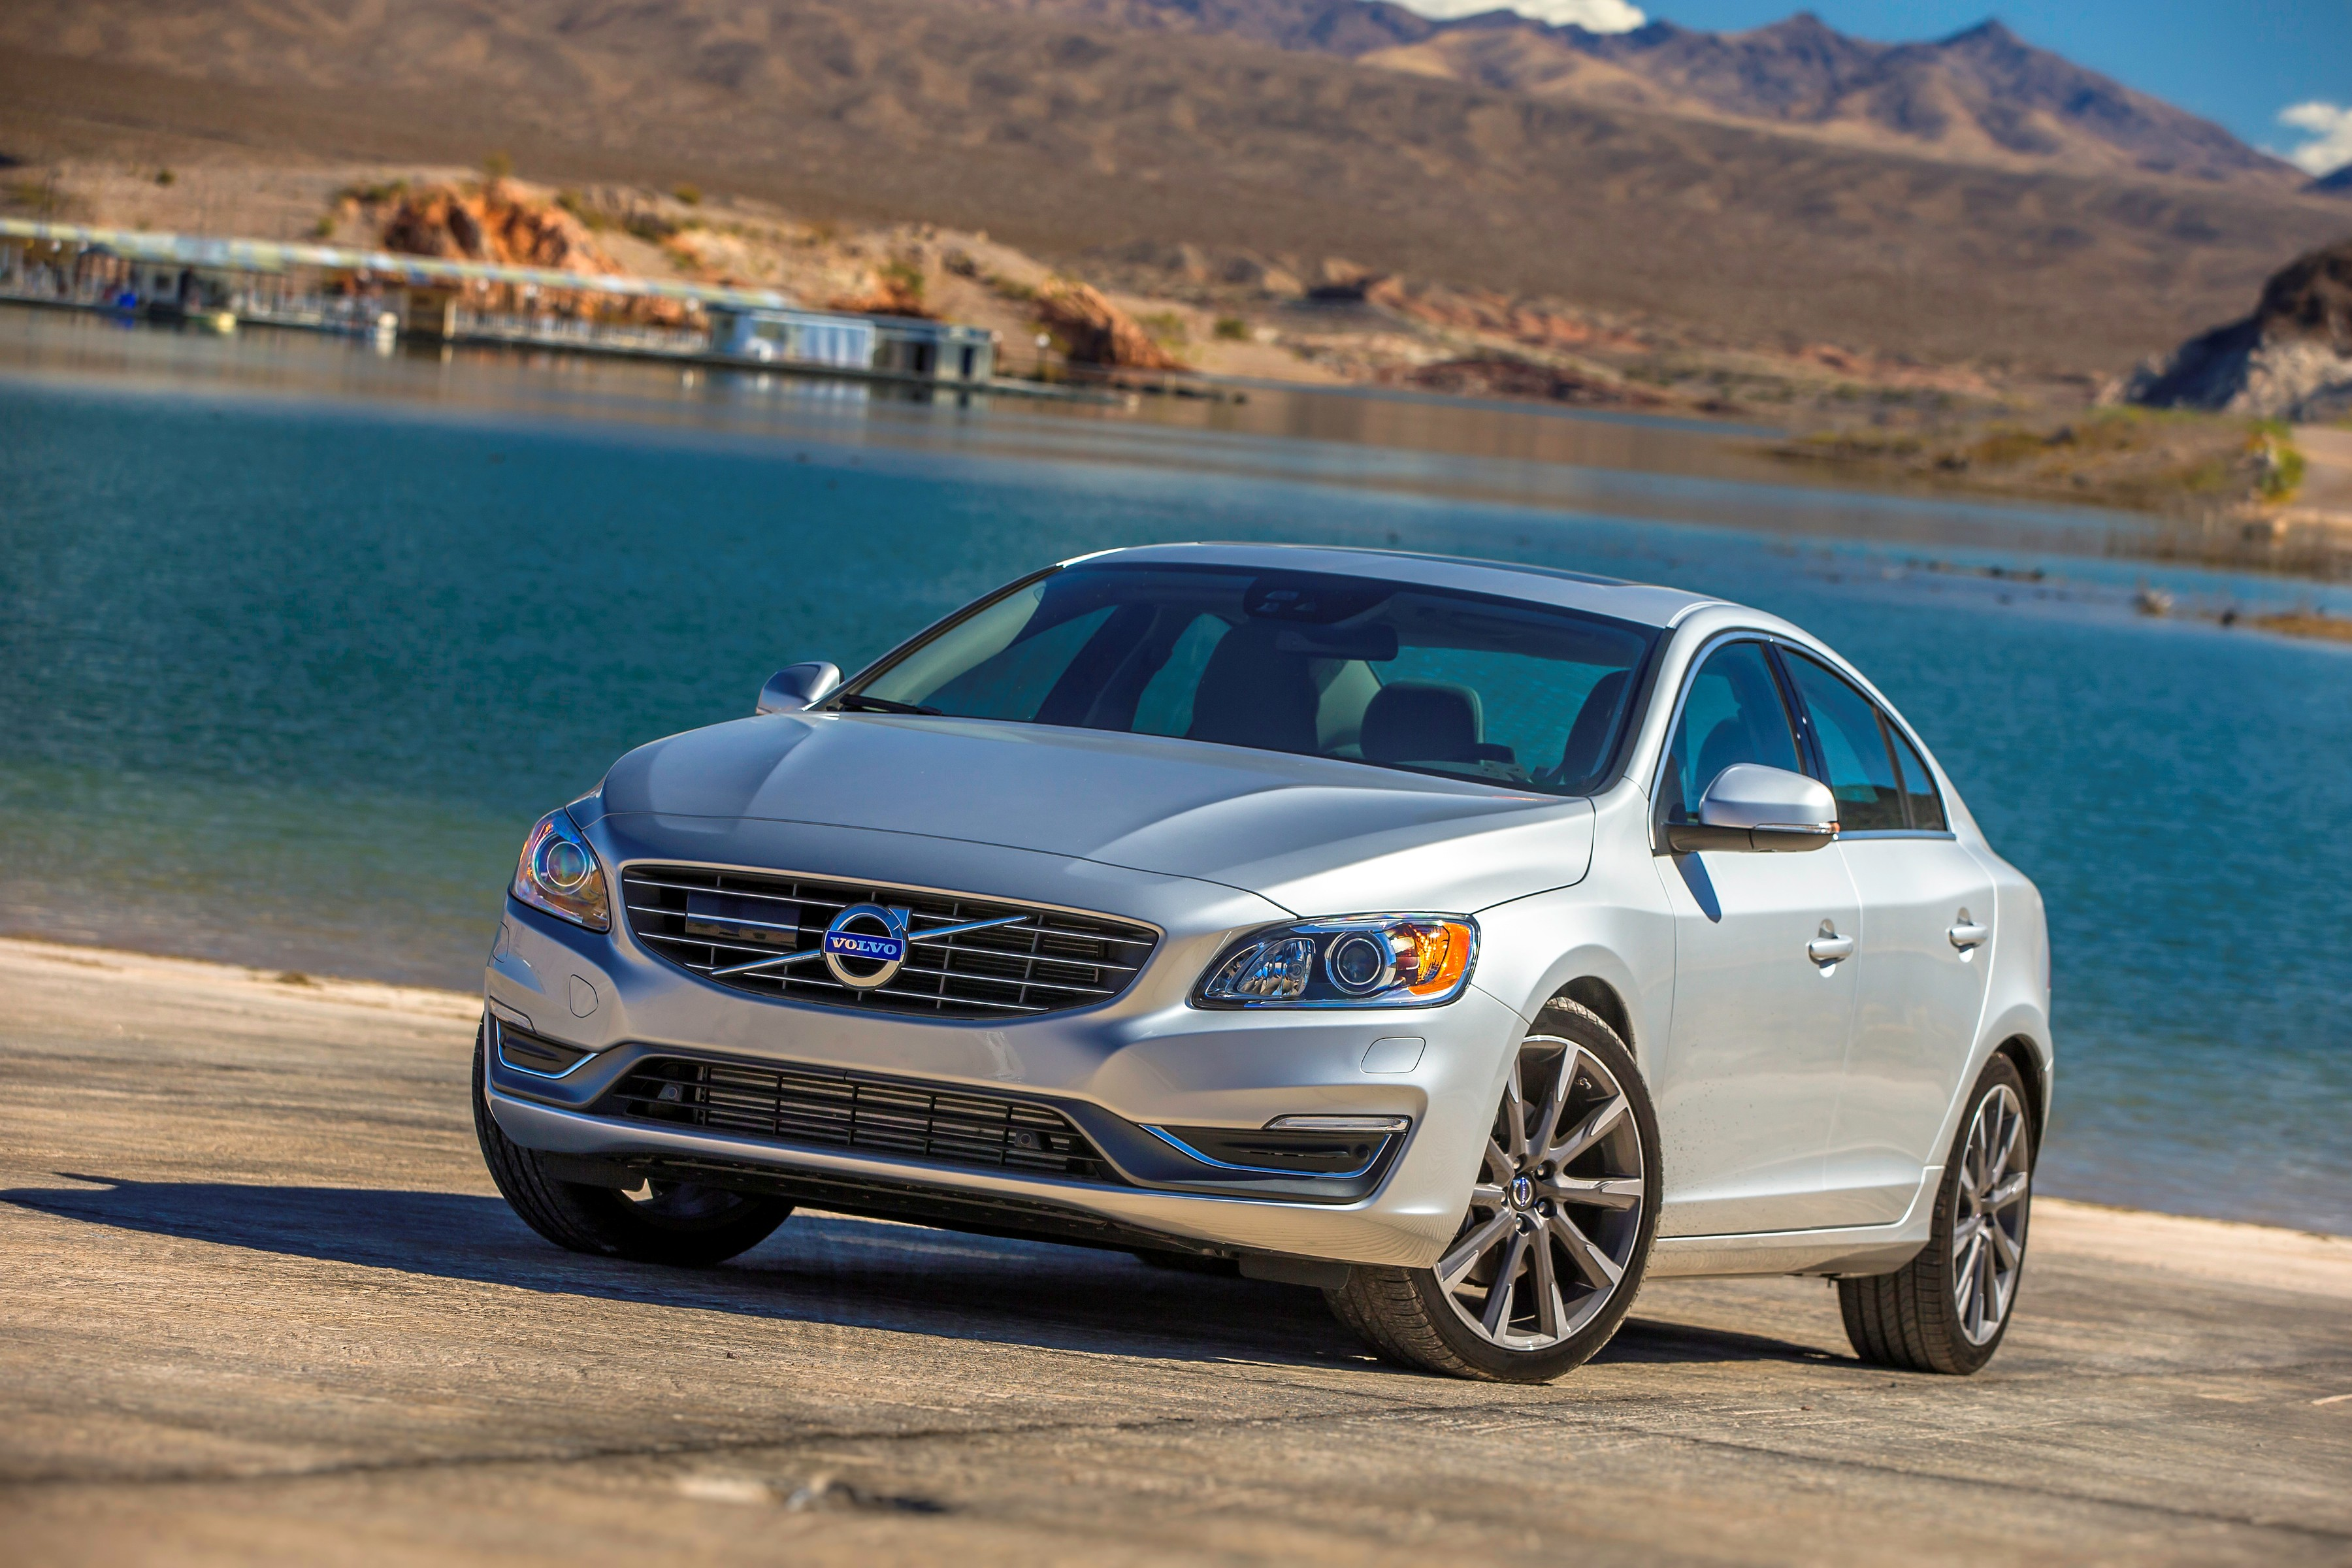 Polestar Offers Upgrades To Make Volvo T6 Awd Models More Exciting